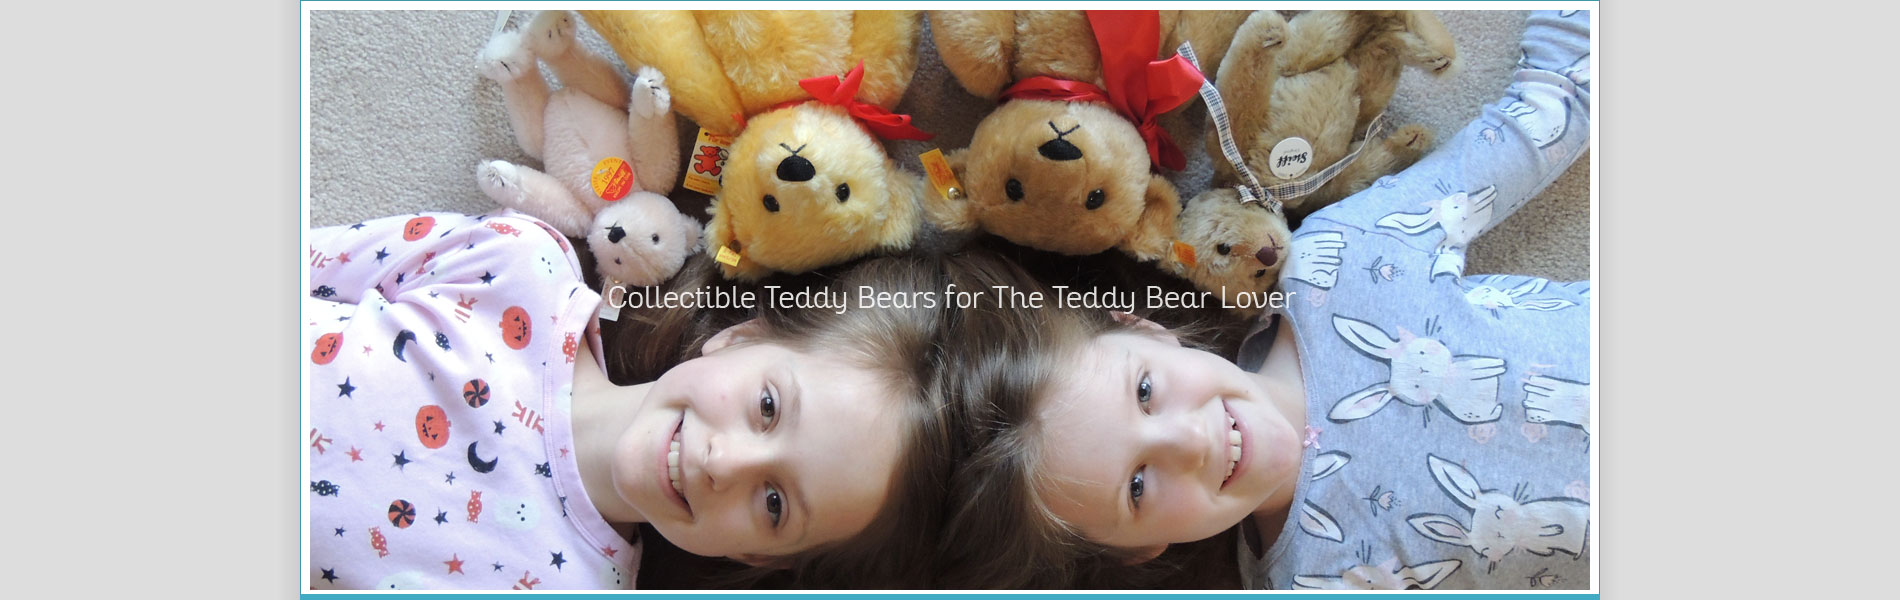 BIffy & Bo Teddy Bears Shoppe